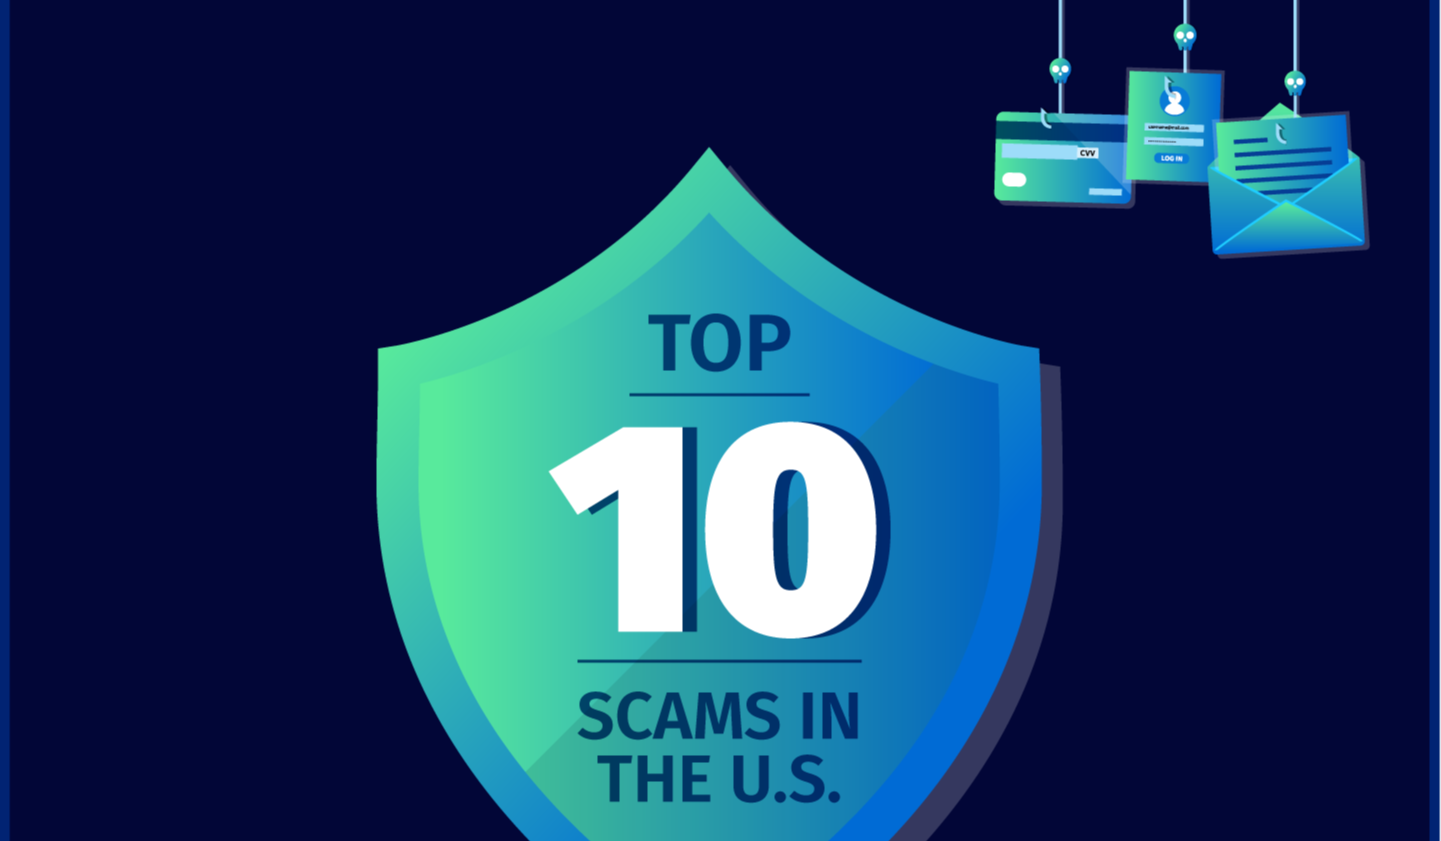 Top 10 Scams in the U.S.